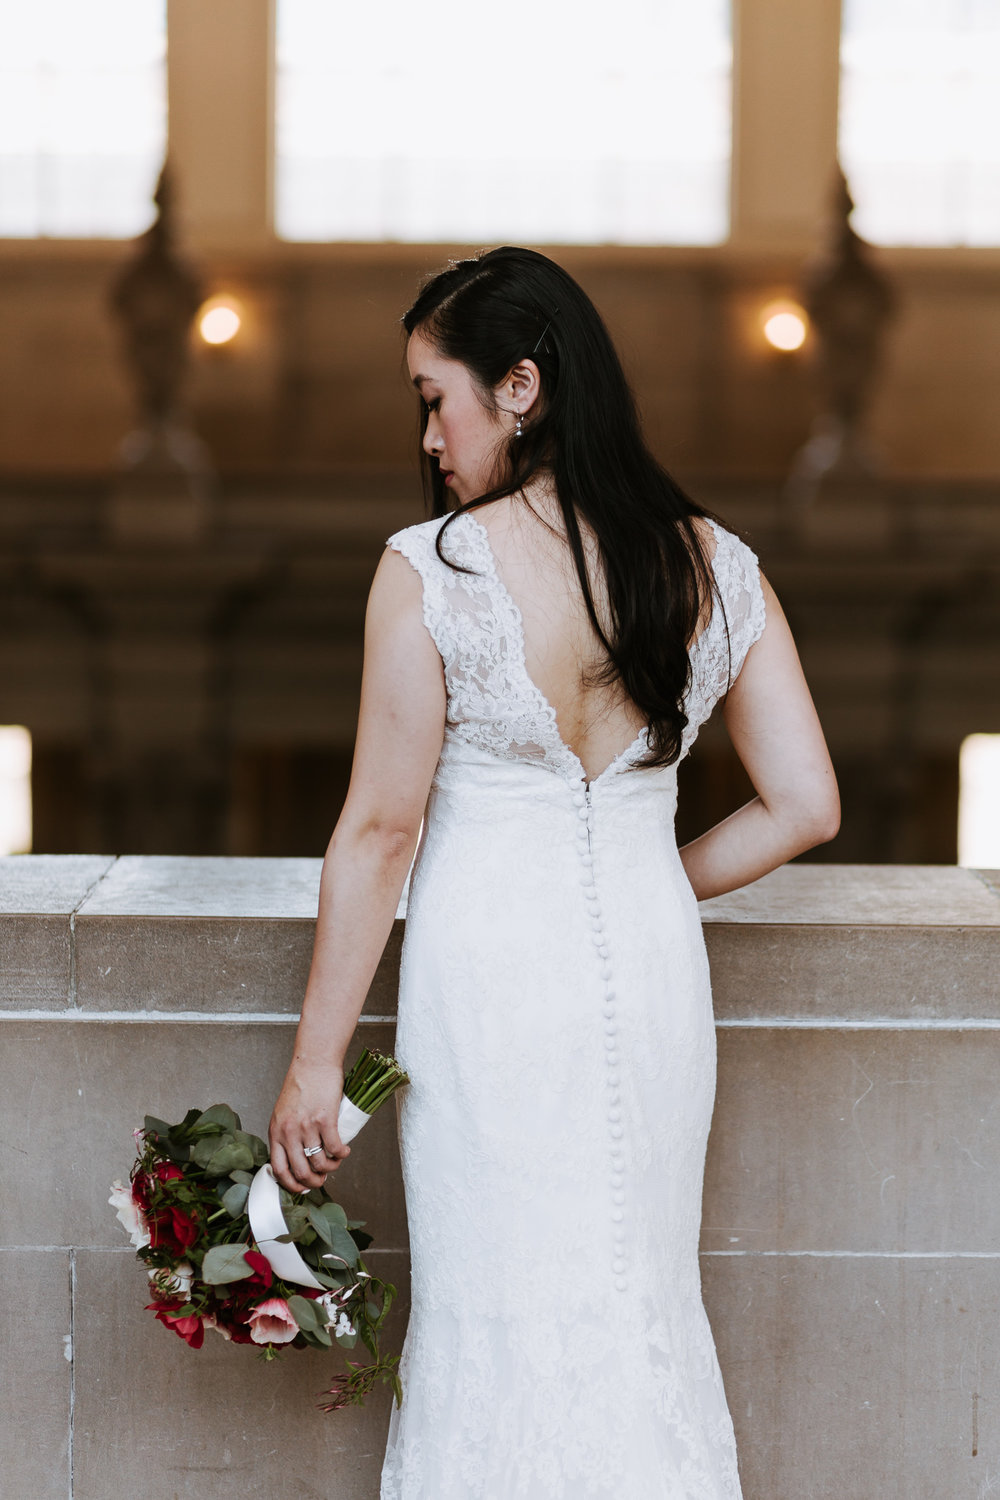 SanFrancisco-City-Hall-Elopement-32.jpg